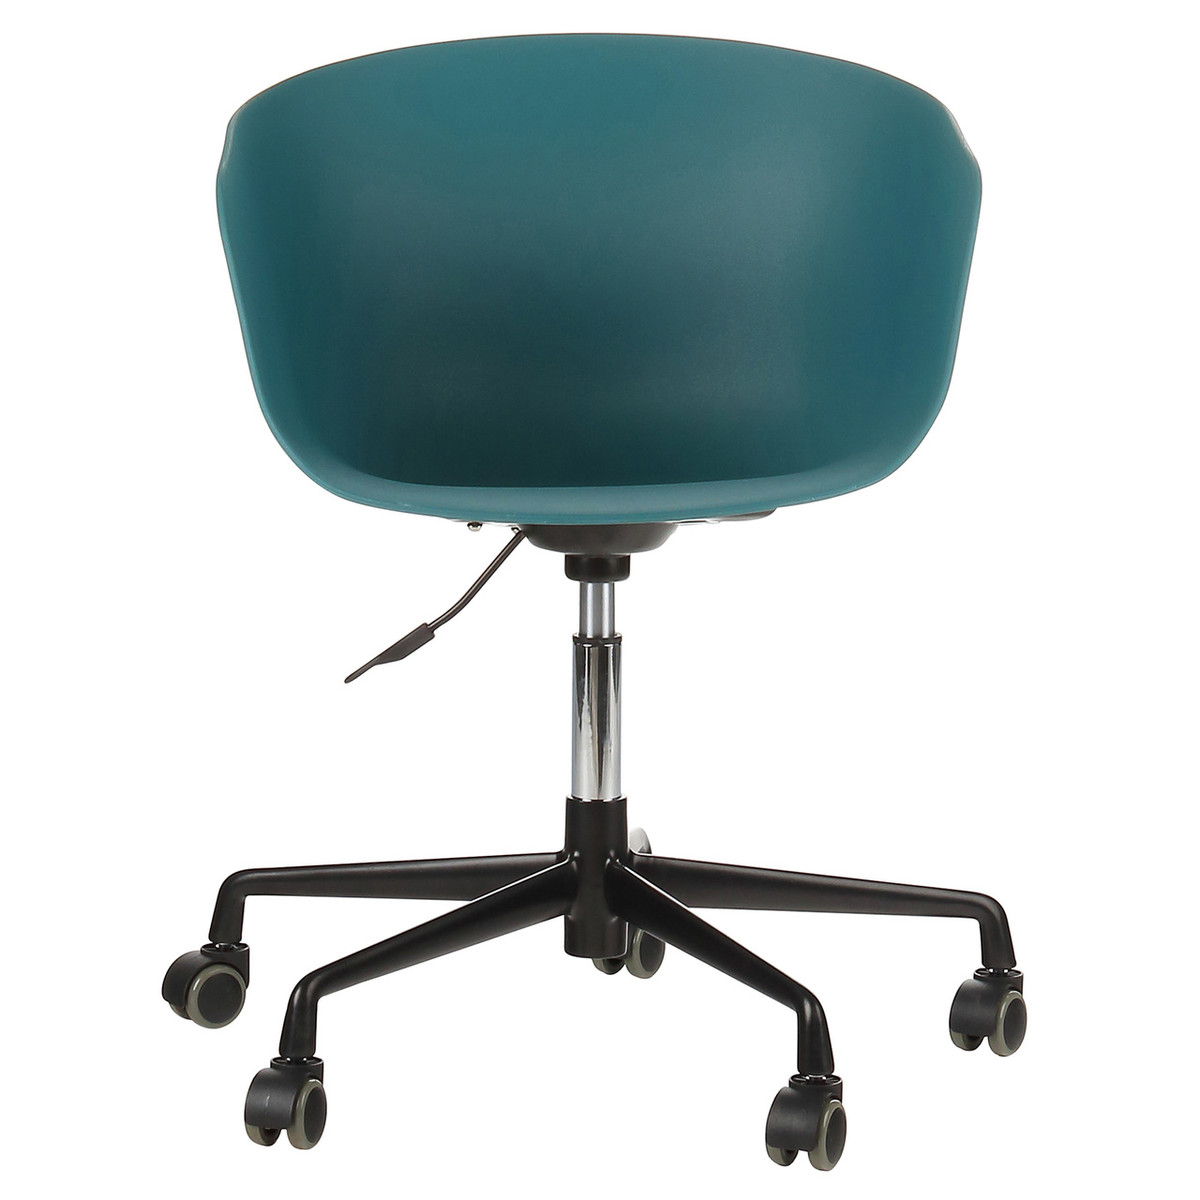 How To Adjust Office Chair Danish Mid Century Modern Teal Office Chair With Black Aluminum Frame